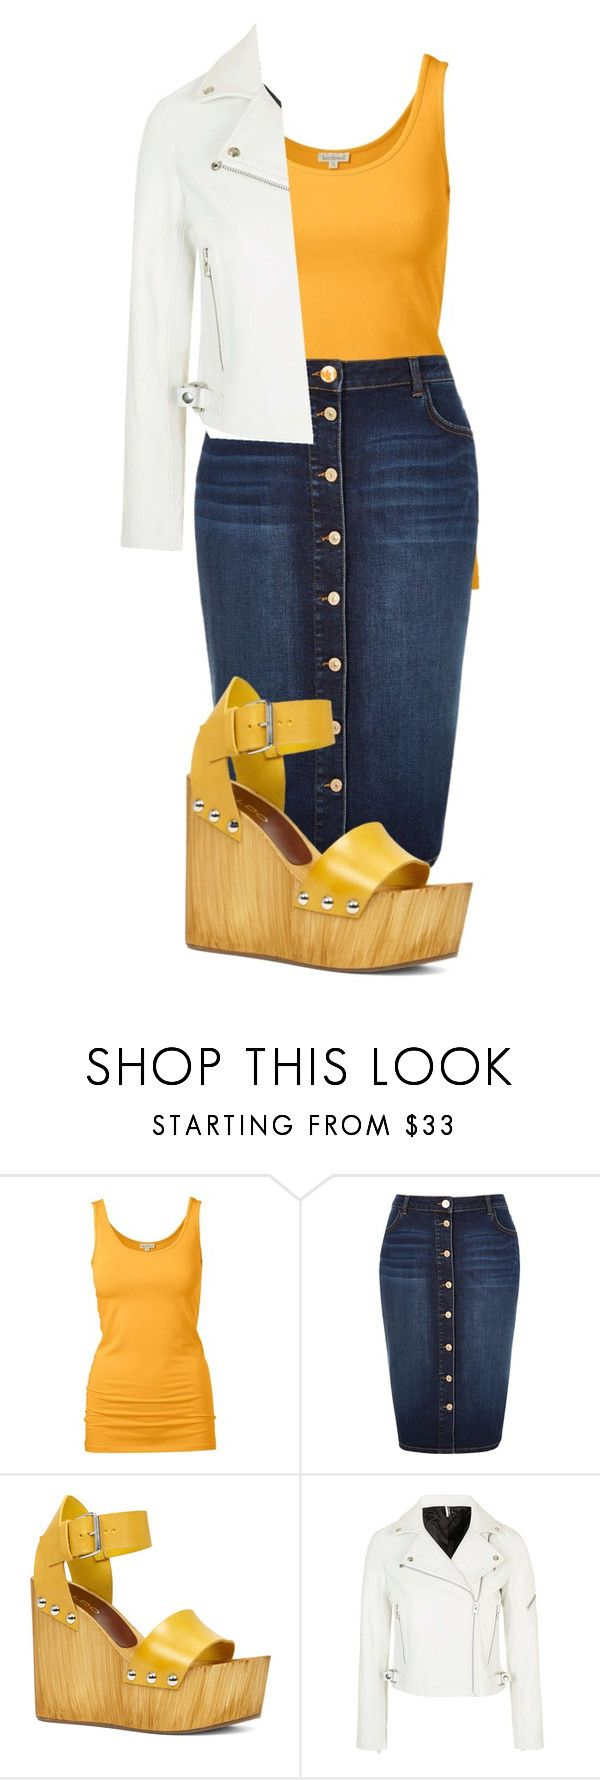 """""""Untitled #103"""" by jade-clarke ❤ liked on Polyvore featuring River Island, ALDO and Topshop"""